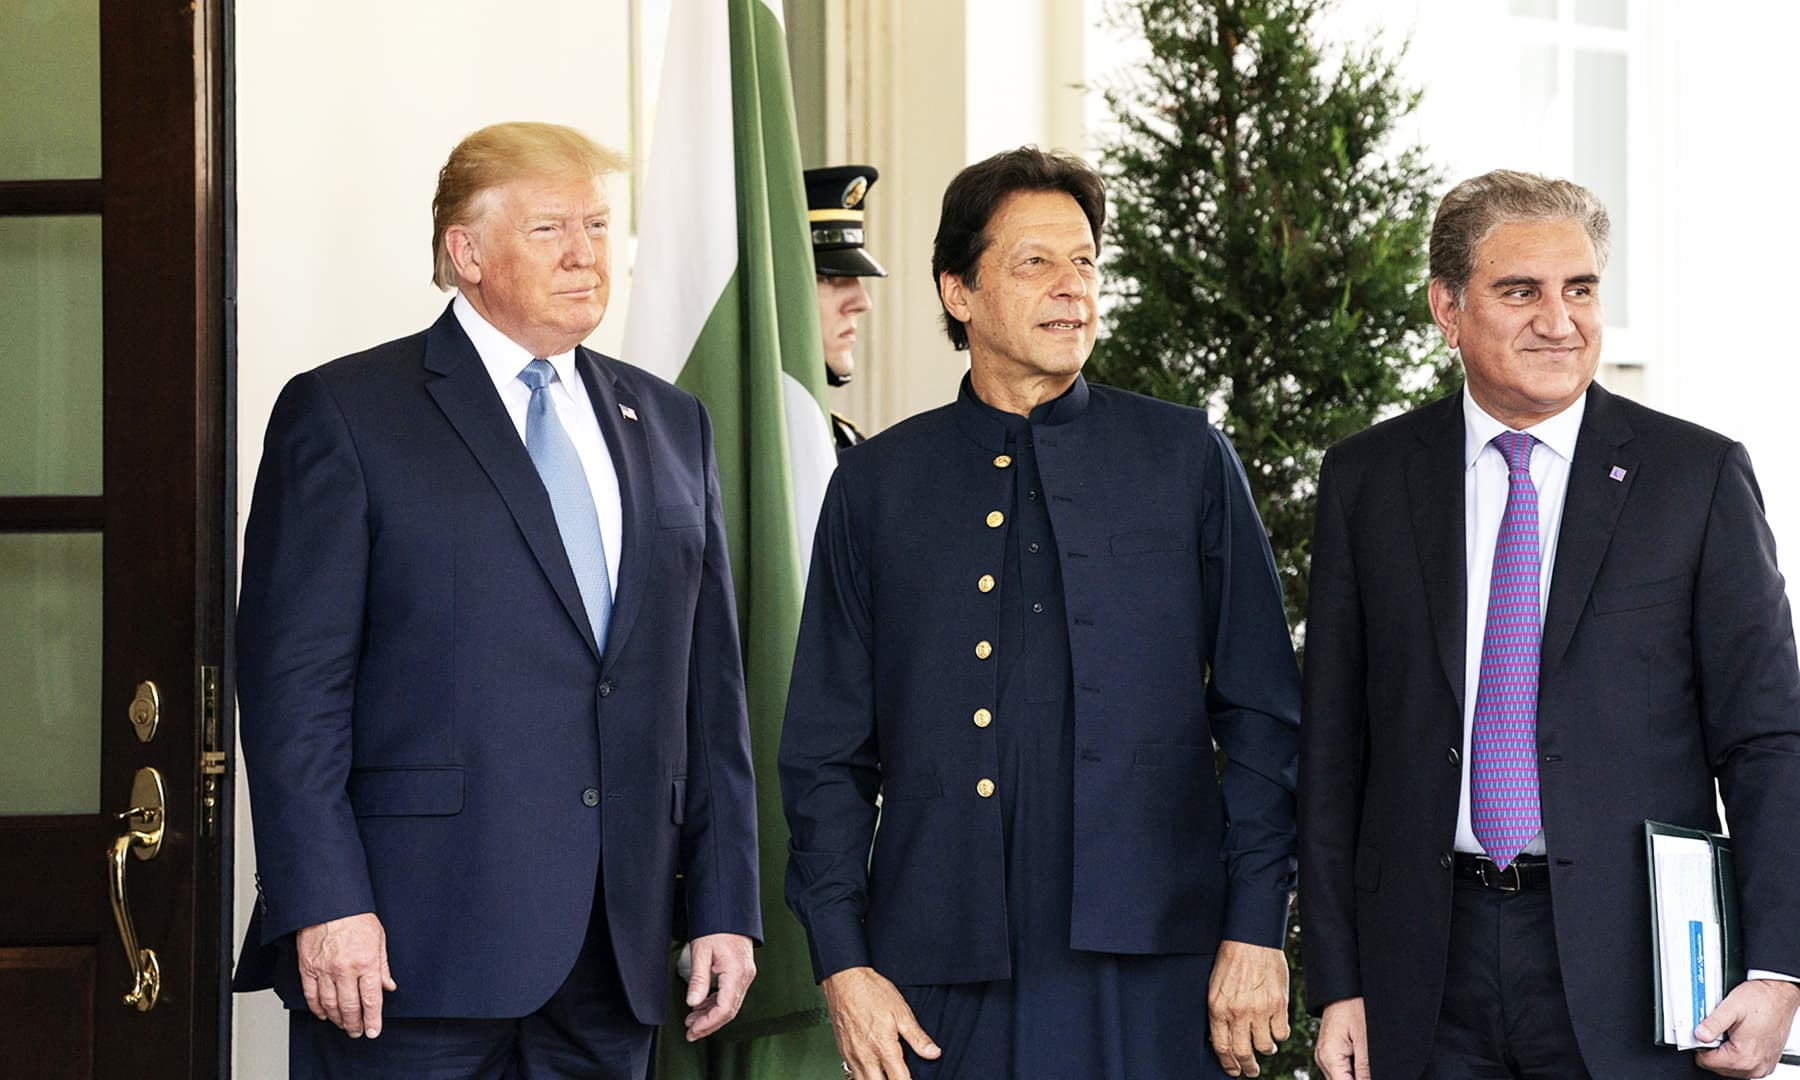 Foreign Minister Shah Mahmood Qureshi pictured with PM Khan and President Trump. —  White House Flickr